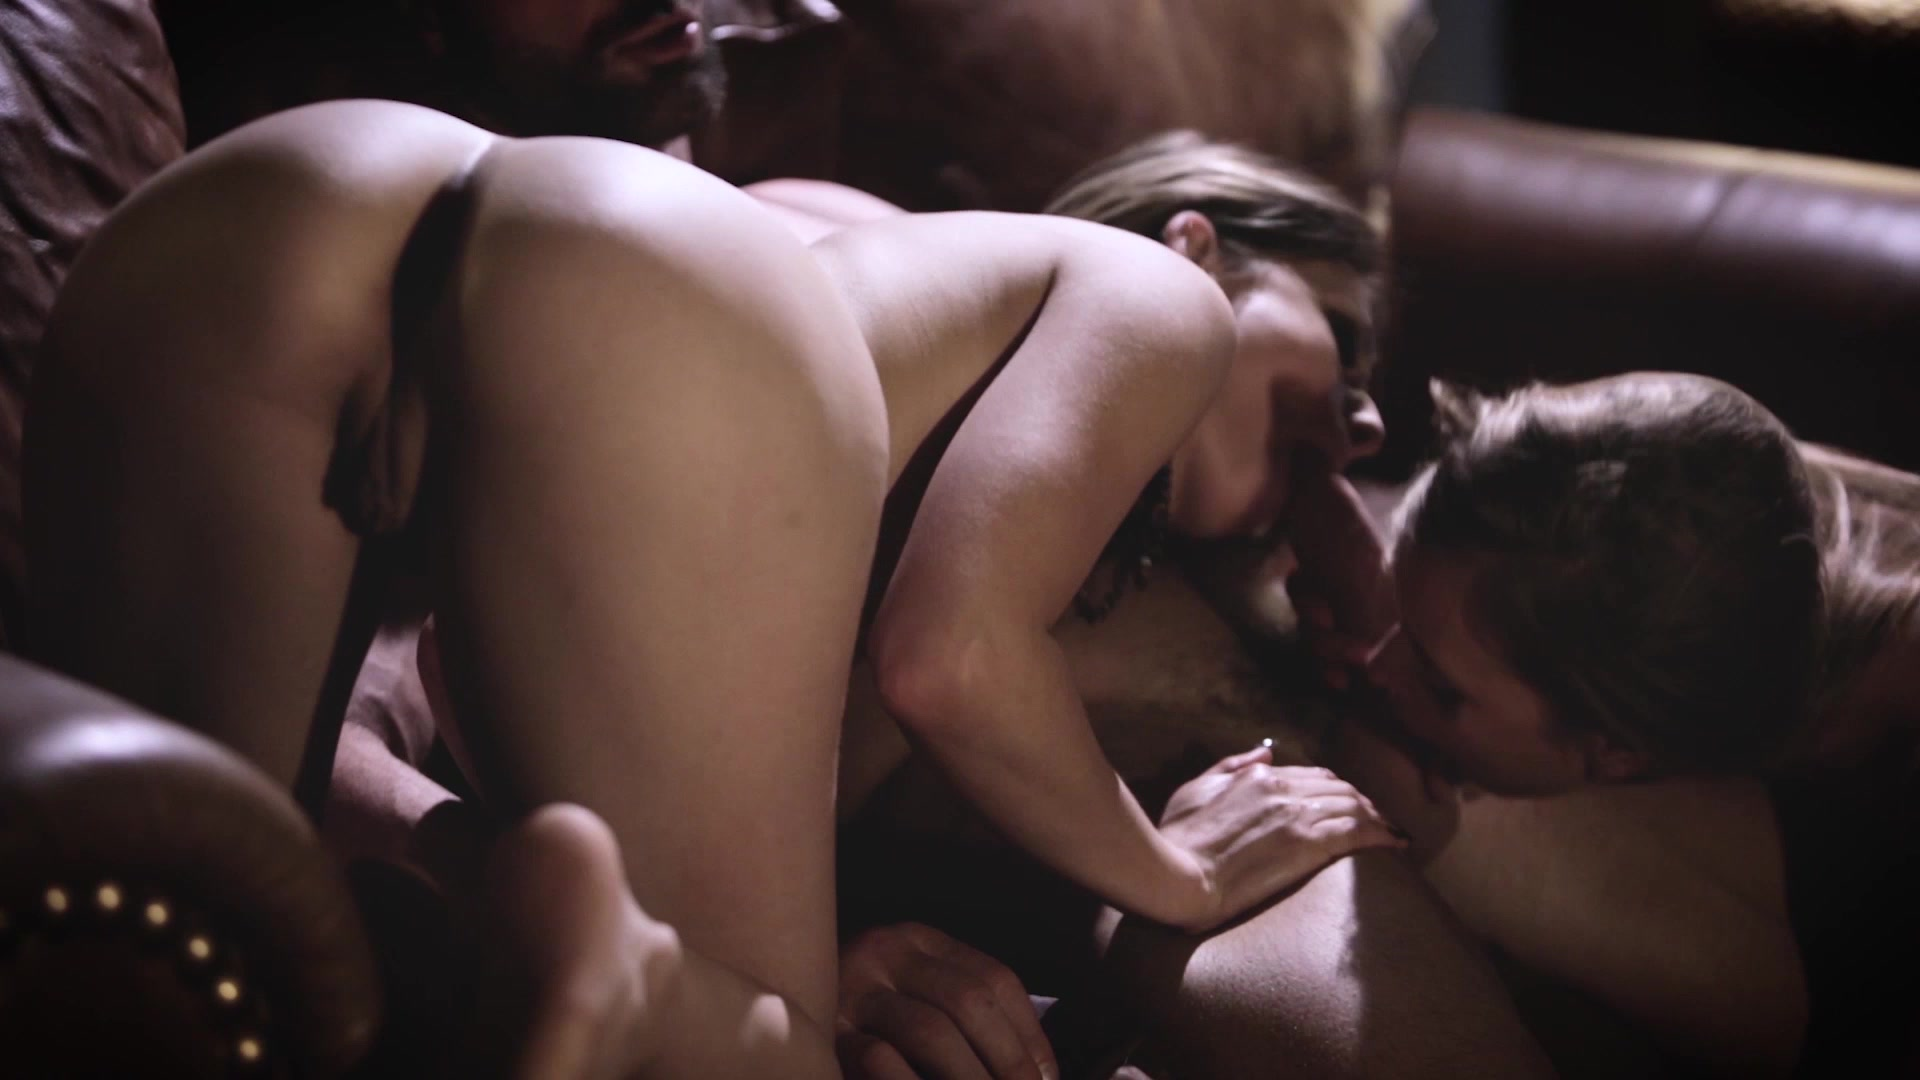 Scene with Kristen Scott (II) and Jill Kassidy - image 17 out of 20